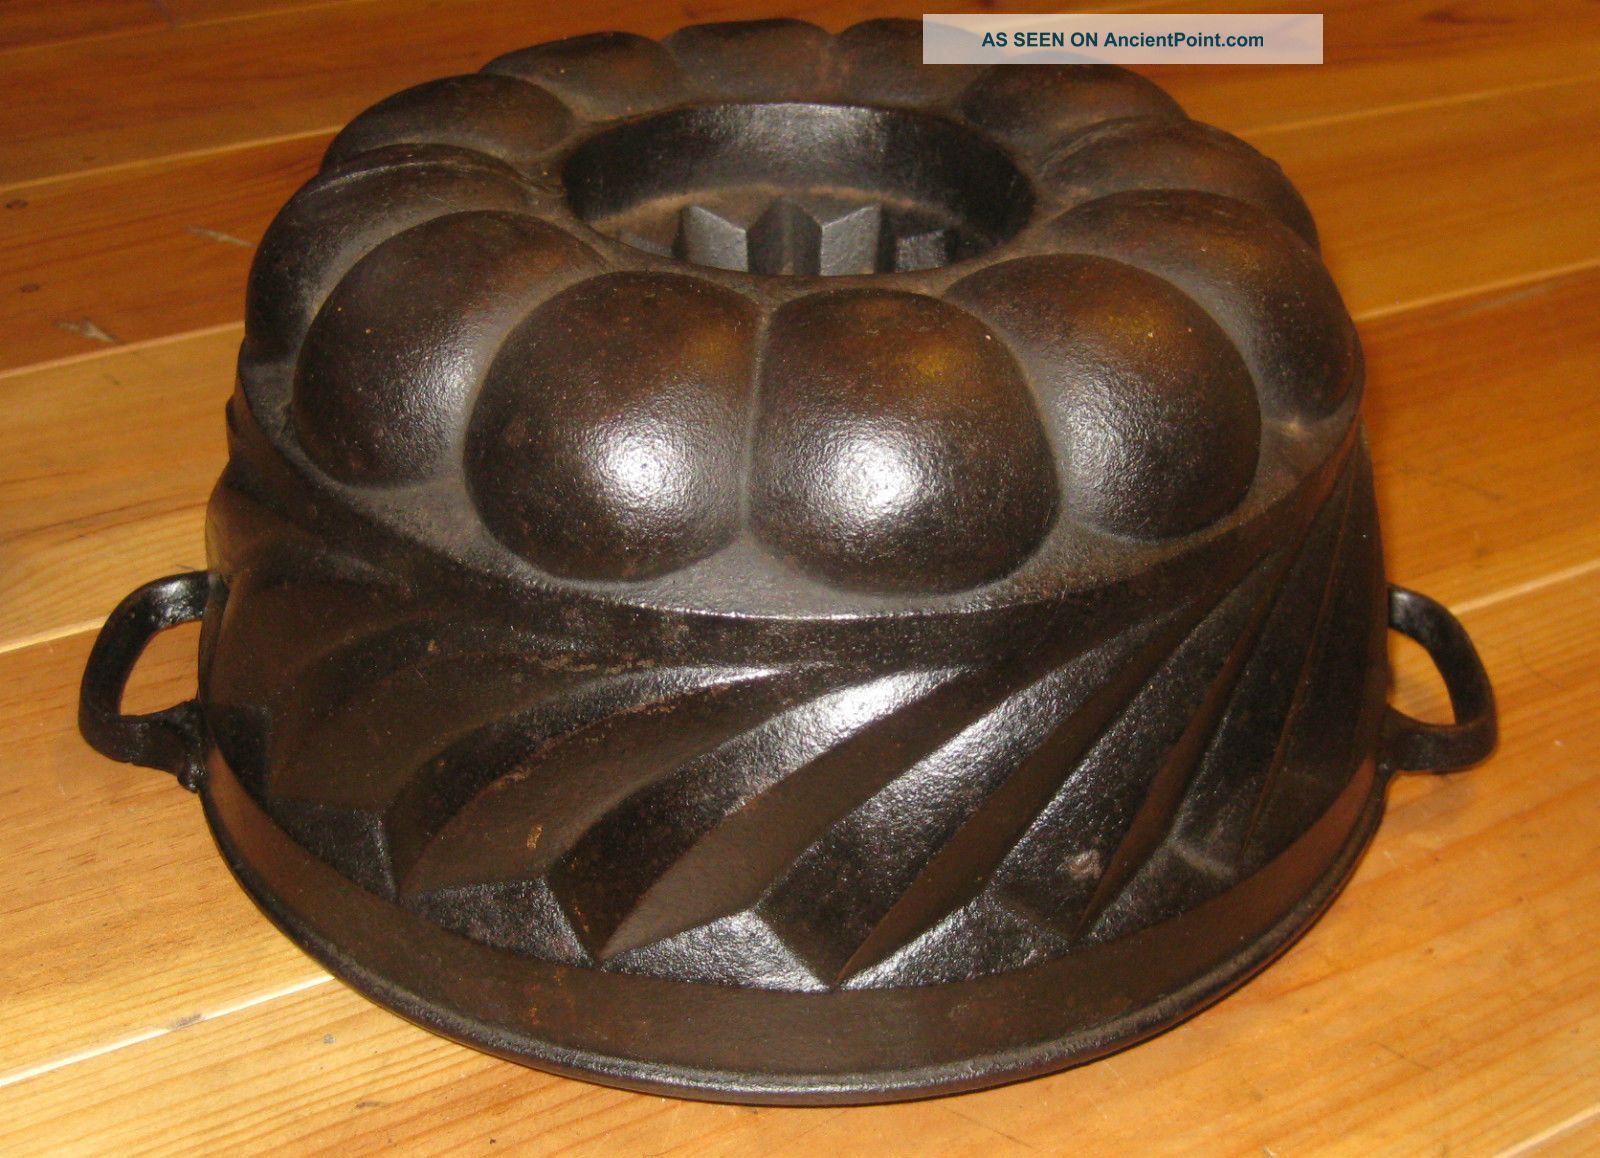 Very Rare Old Antique Cast Iron Bundt Pan Germany 3293 G Marked Other Antique Home & Hearth photo